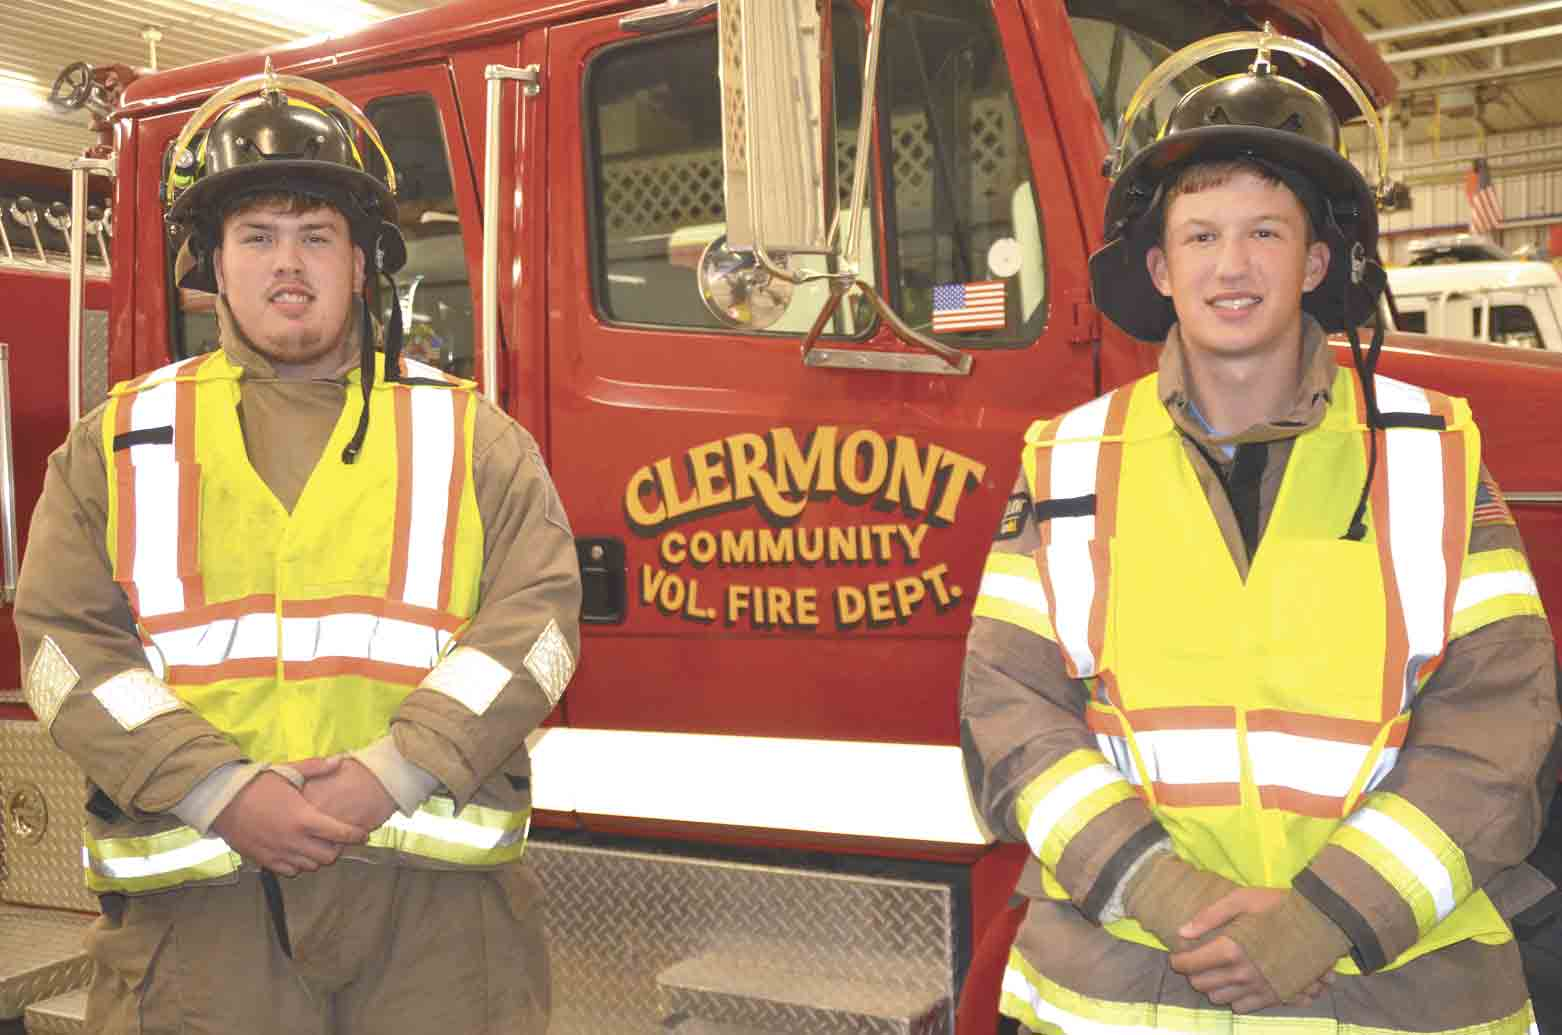 Andrew Schmidt (left) and Dane Schott have their own fire fighting outfits at the Clermont Fire Department. The two junior firefighters both hope to have careers in firefighting. (Jack Swanson photo)Juniors want to be real firefighters some dayBy Jack Swansonjswanson@...